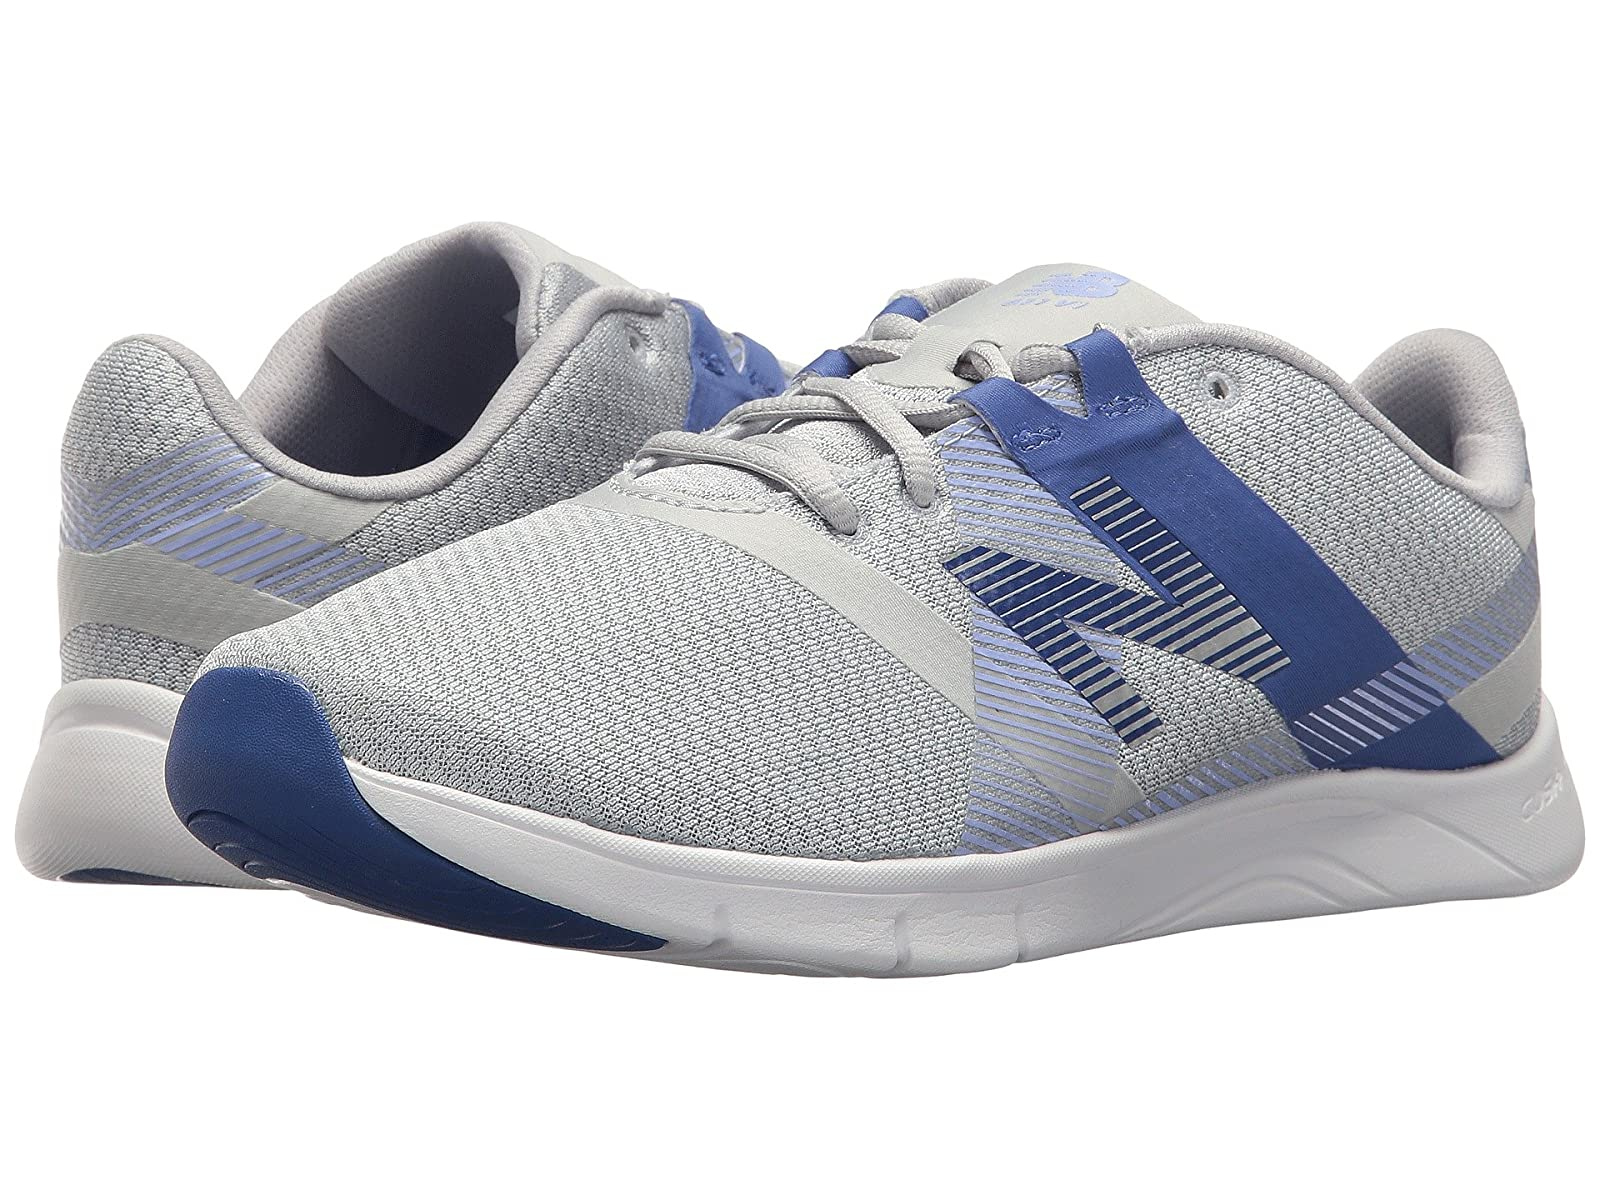 New Balance WX611v1Cheap and distinctive eye-catching shoes